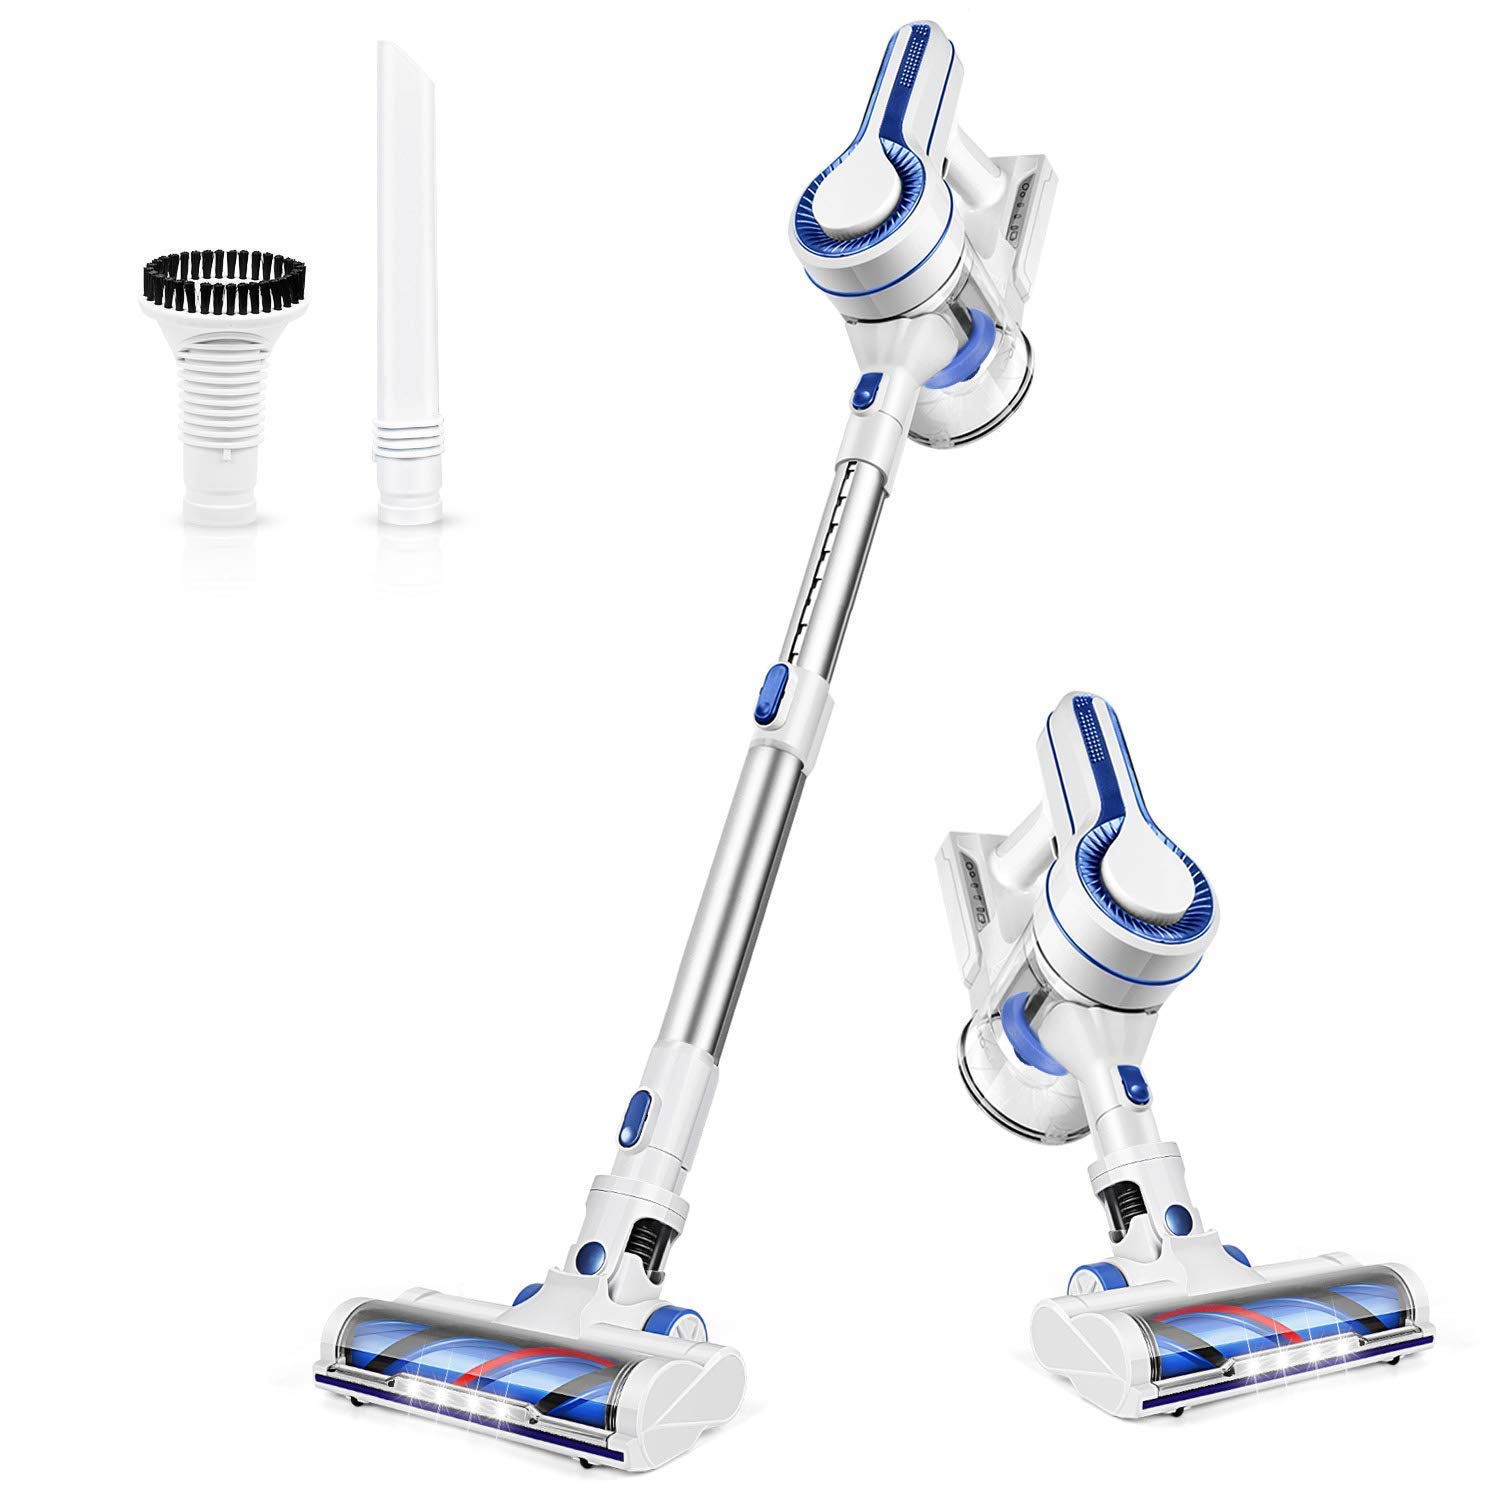 Powerful Suction Lightweight 4 in 1 Stick Vacuum Extension Wand /& Detachable Battery for Home Hard Floor Car Pet Cleaning H10 A9 APOSEN Cordless Vacuum Cleaner